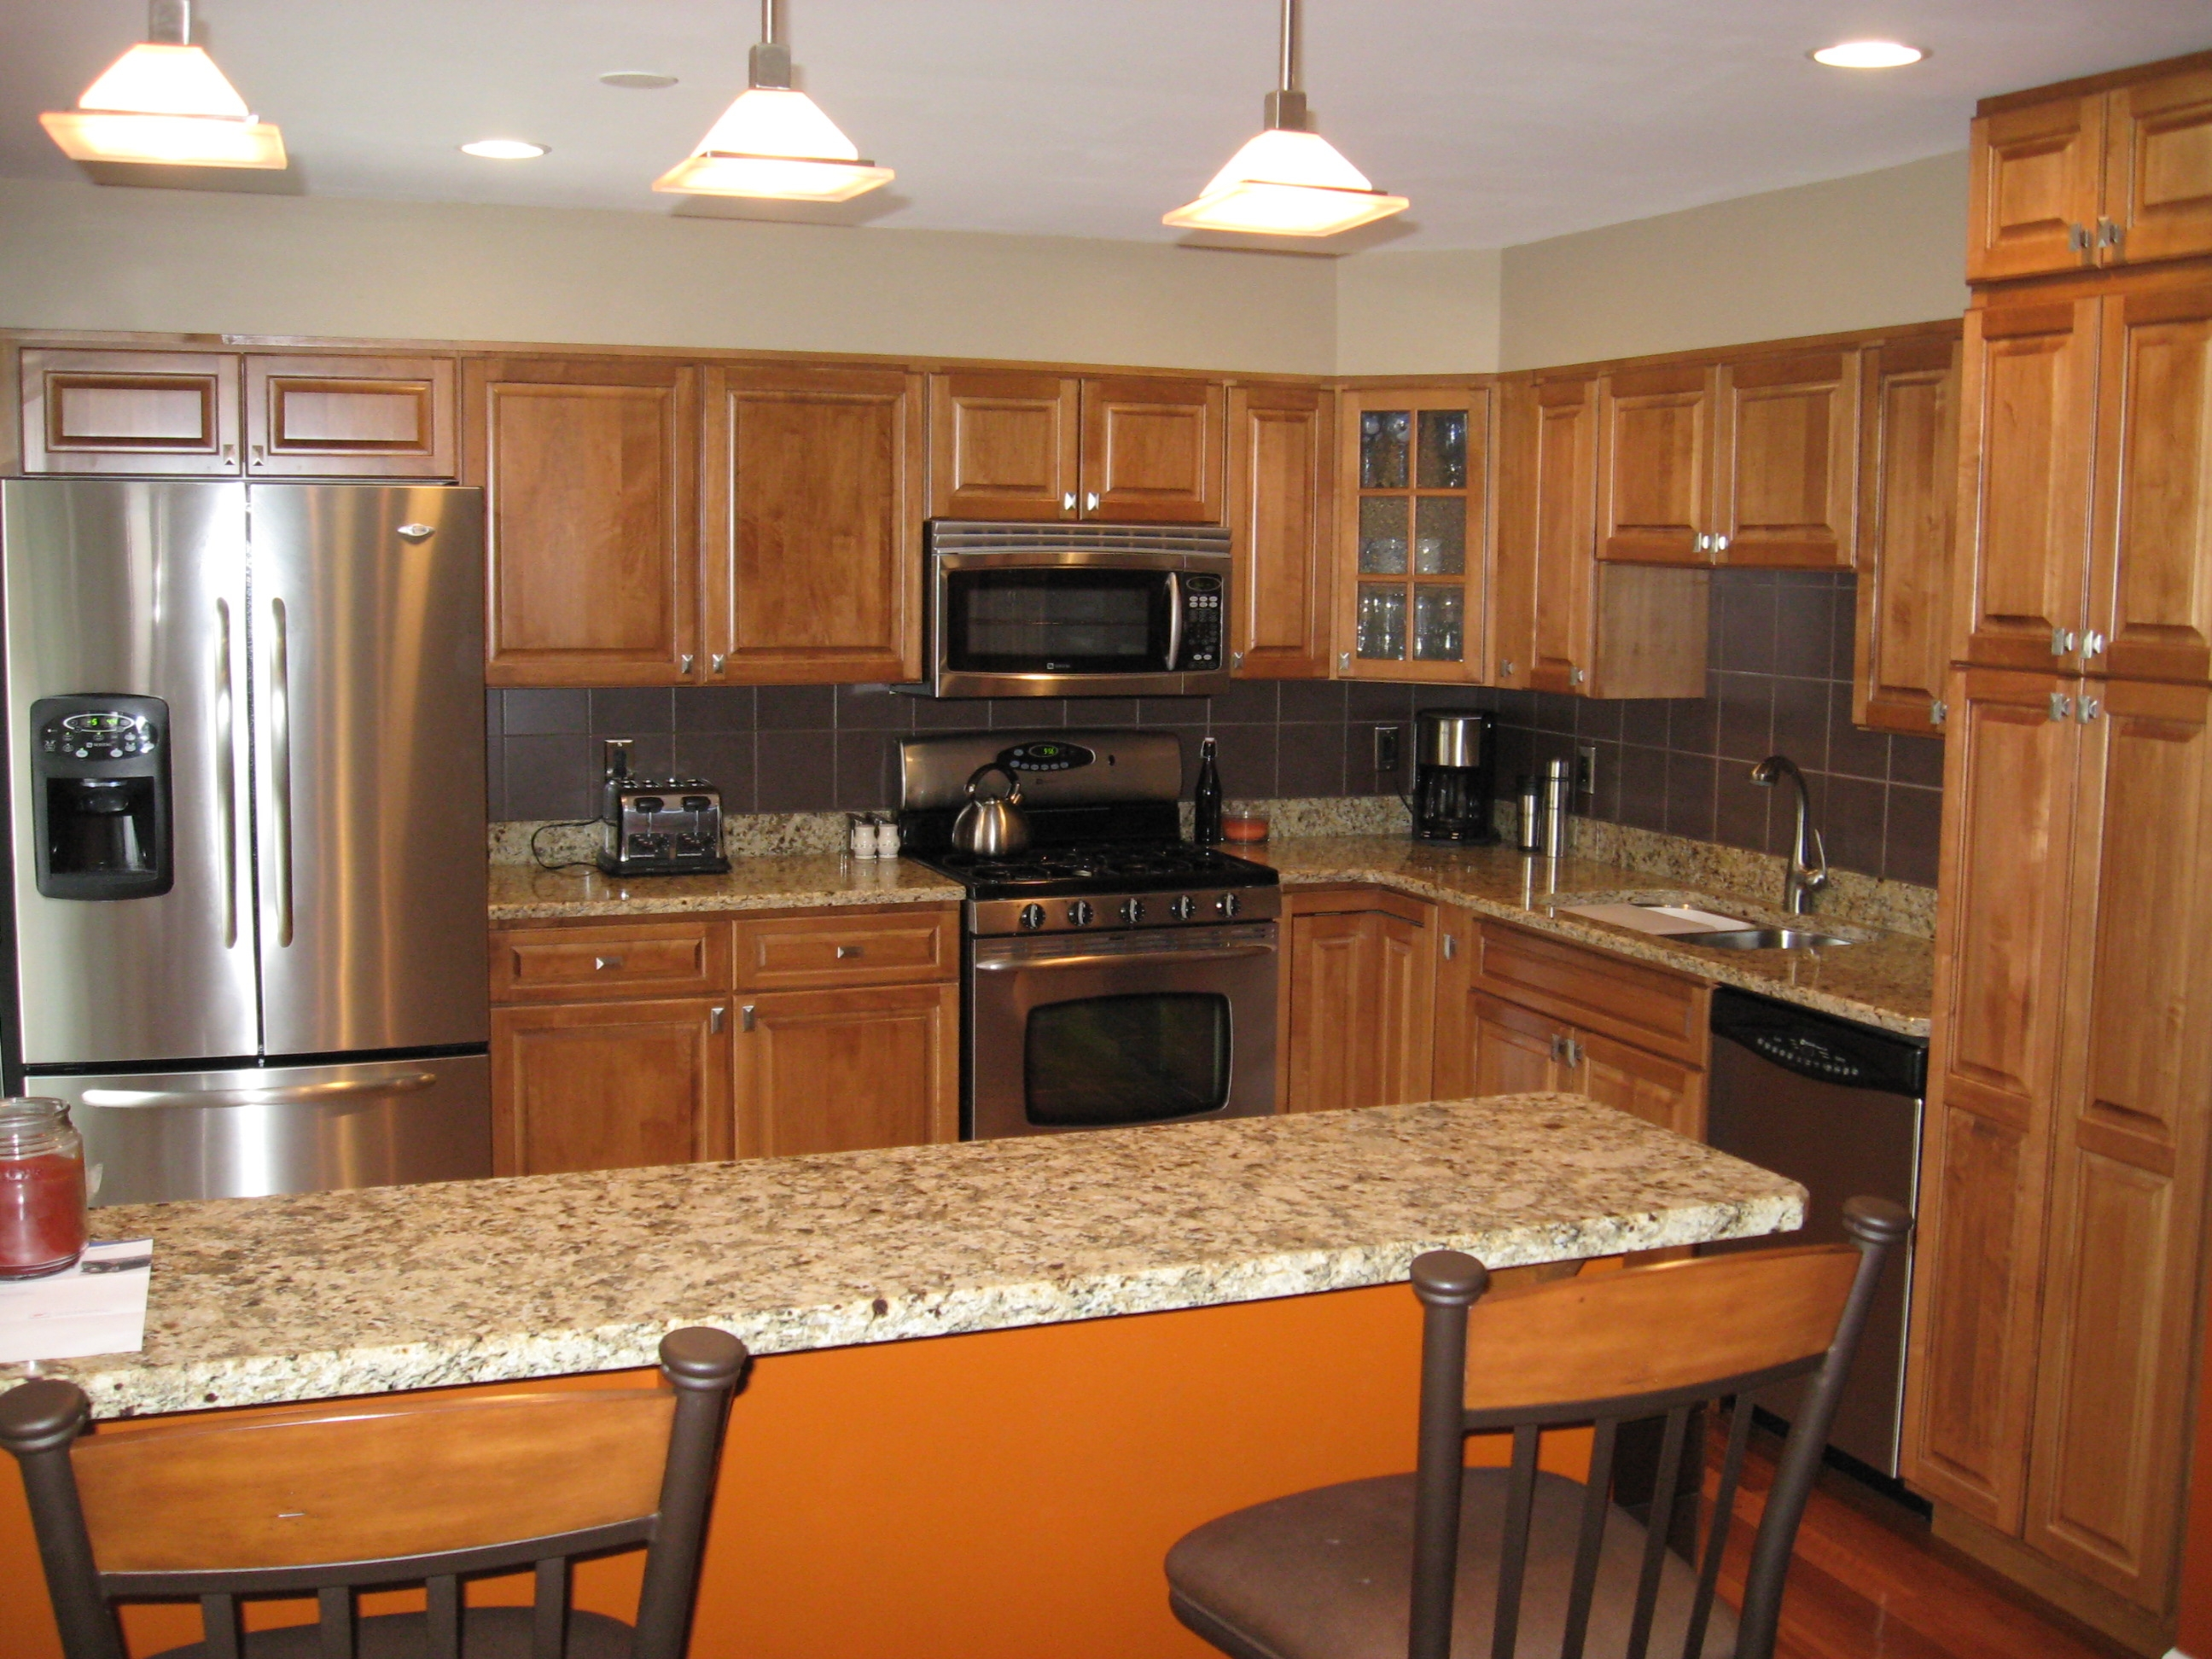 Permalink to Kitchen Cabinet Countertop Ideas